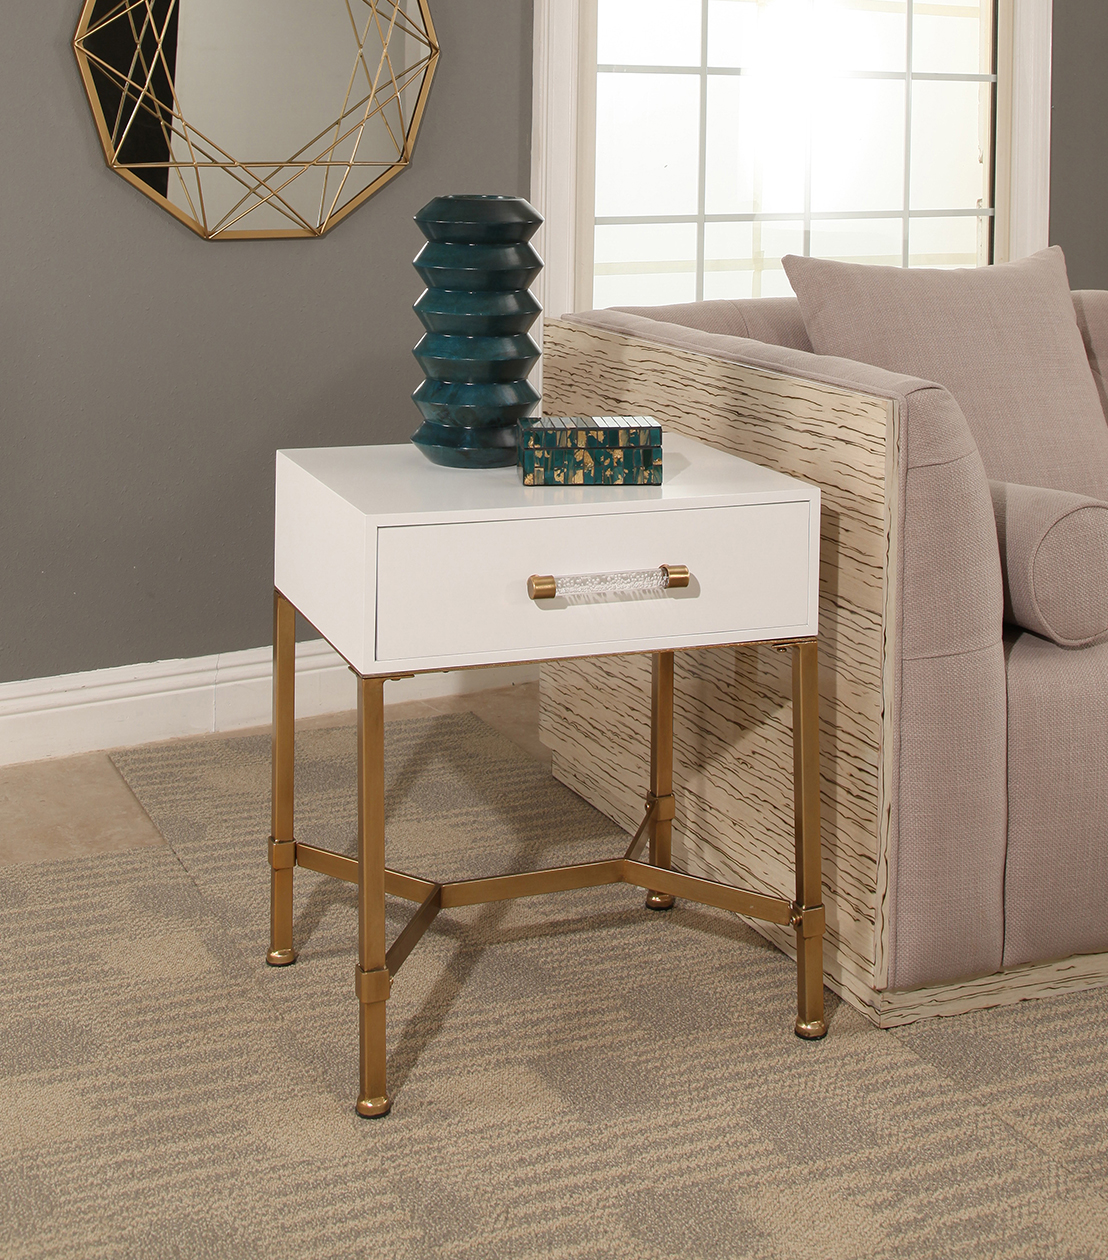 accent tables sophie gold iron end table white wht resin wicker chairs wood and side red round glass metal floor threshold transitions console carpet cover strip sun umbrella base